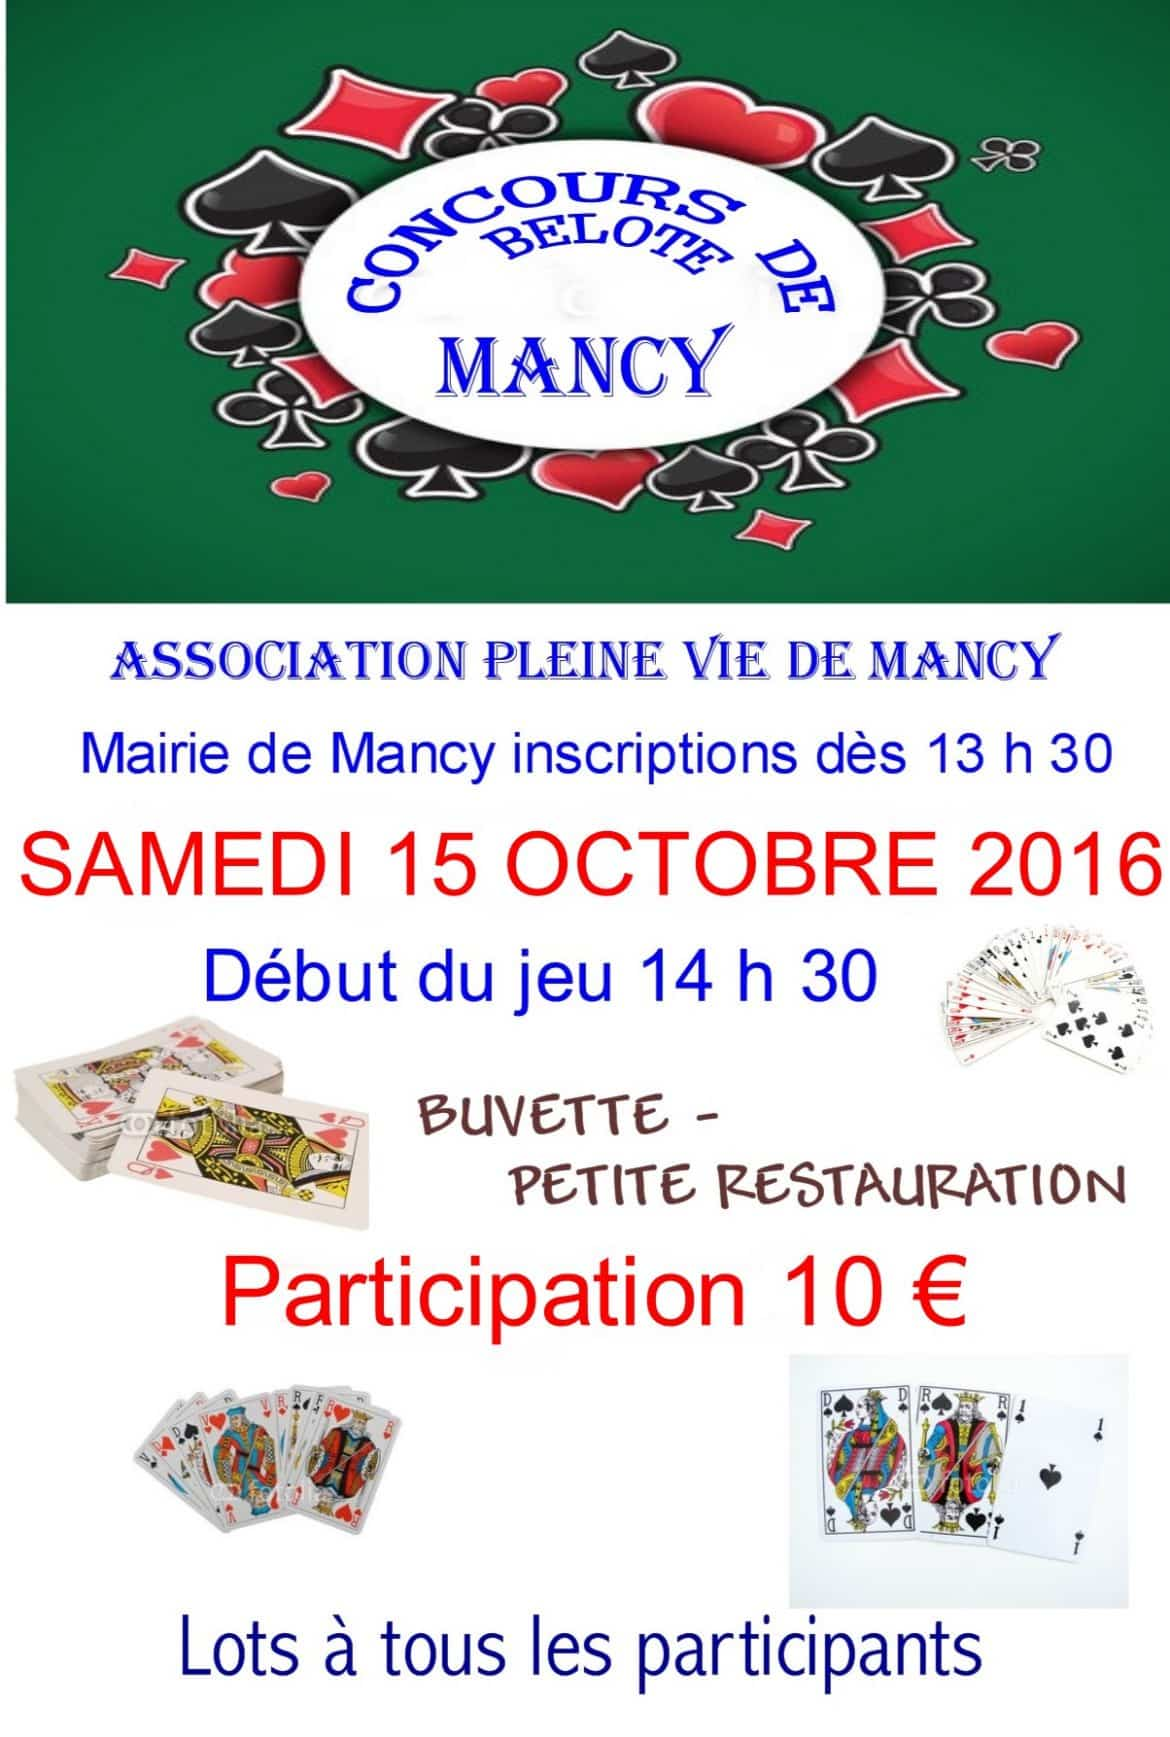 Tournoi de belote le 15 octobre 2016 à Mancy – Marne